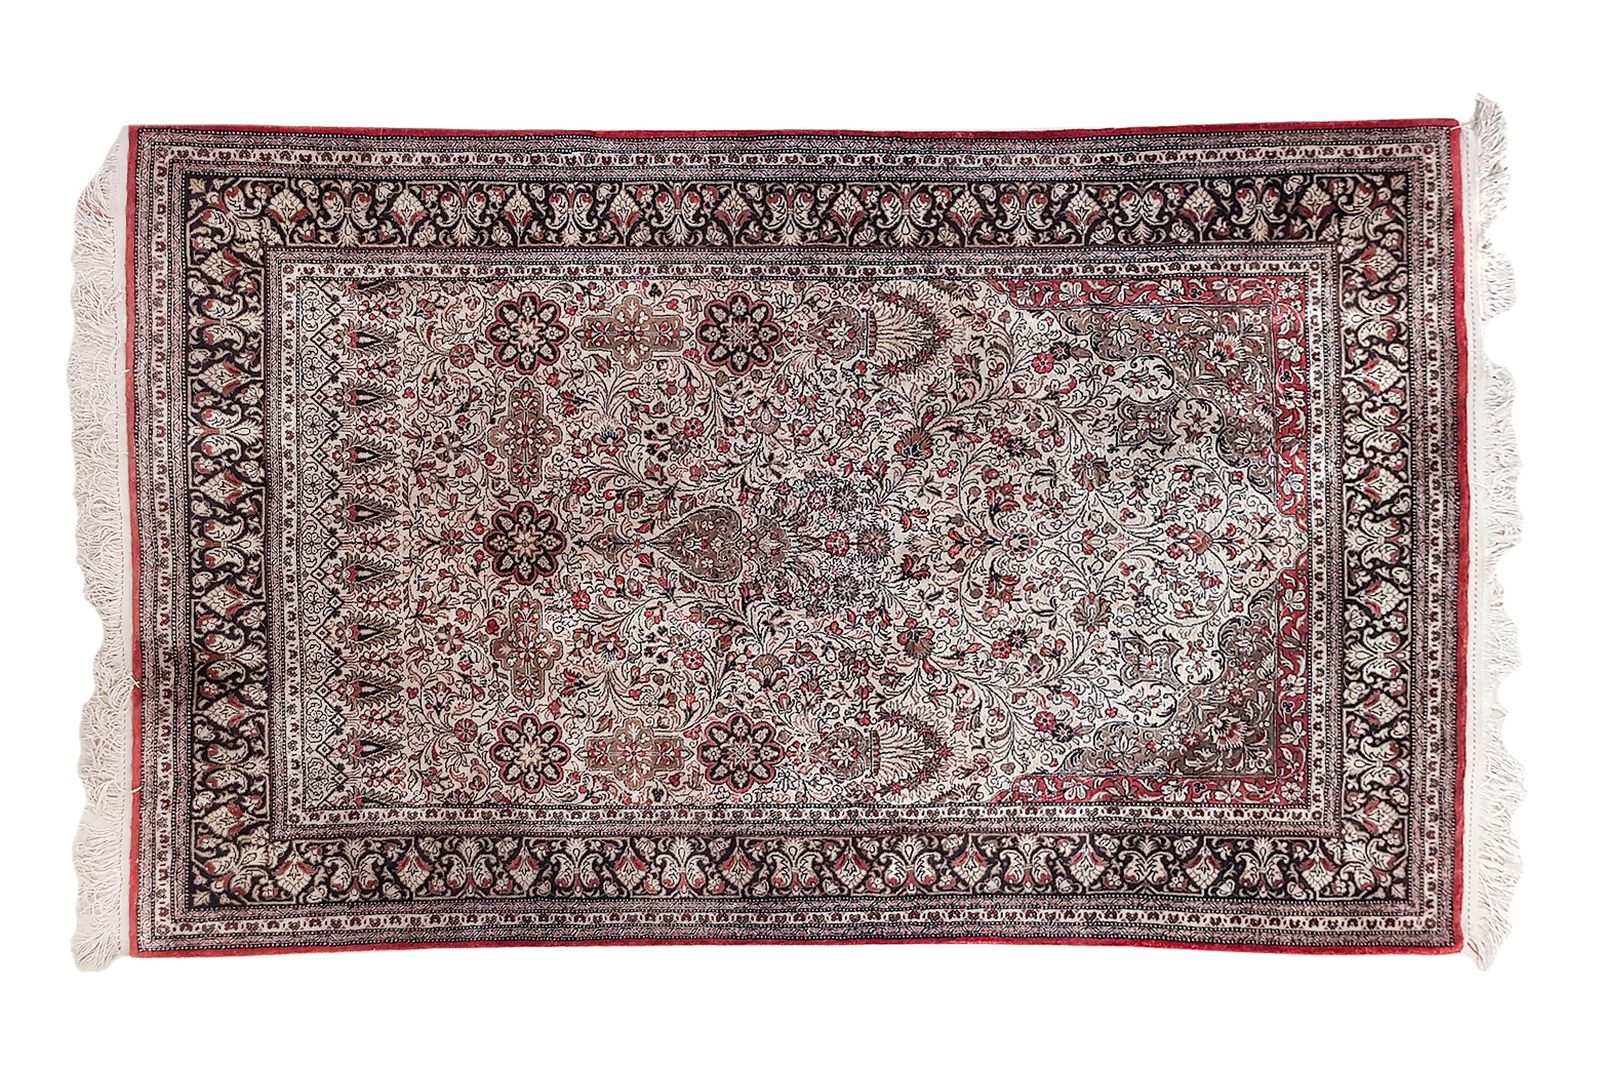 #189 Old Persian carpet | Alter persischer Teppich  Image